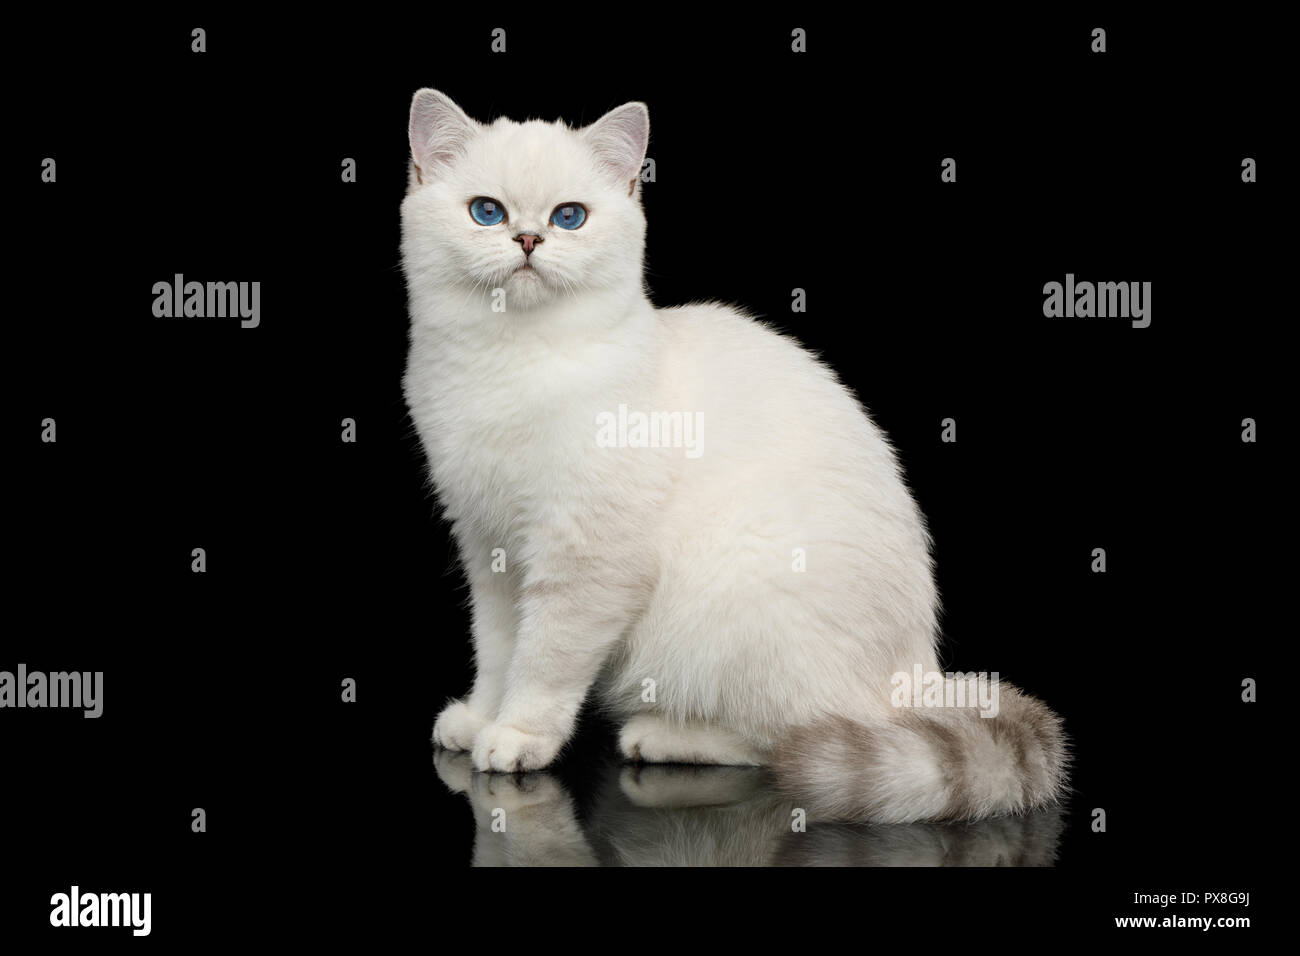 Playful British White Cat, with blue eyes, Sitting on Isolated Black Background, side view Stock Photo